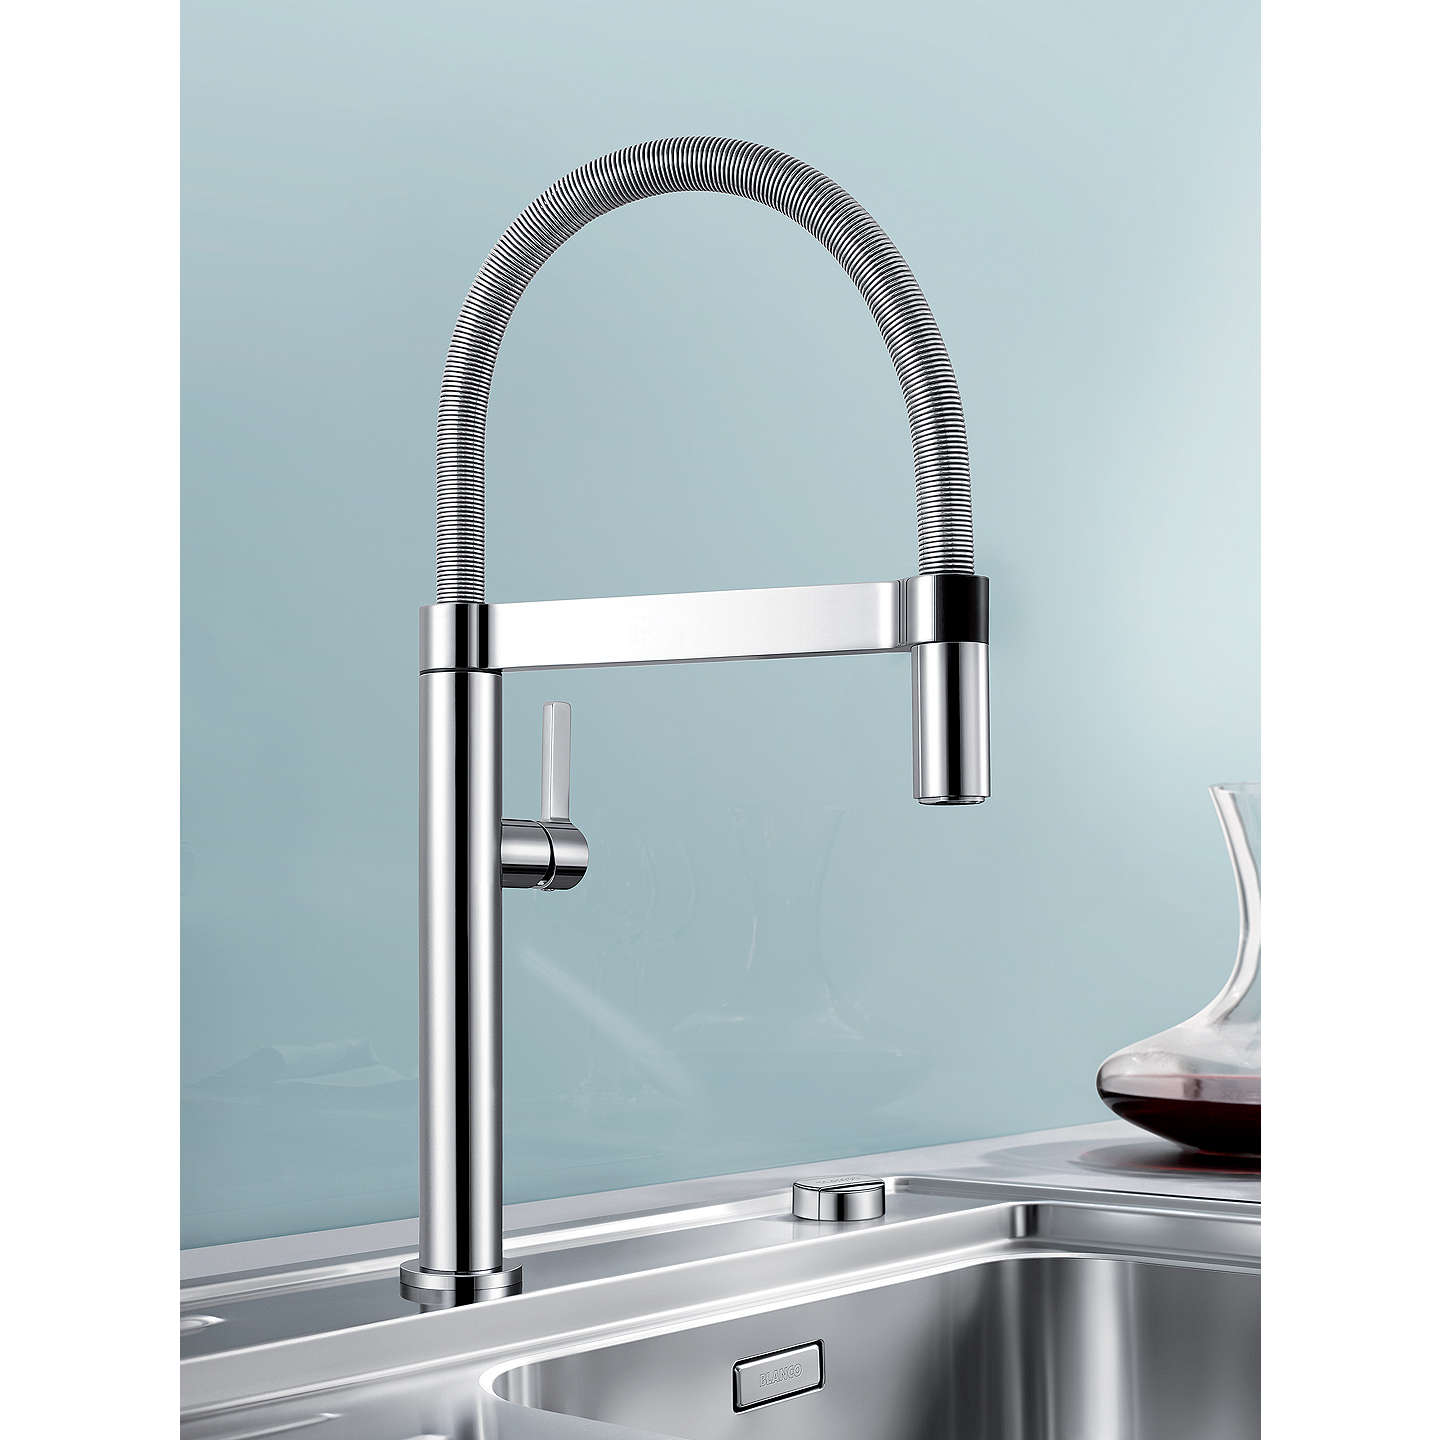 Fancy Soci Faucets Adornment - Faucet Collections - thoughtfire.info